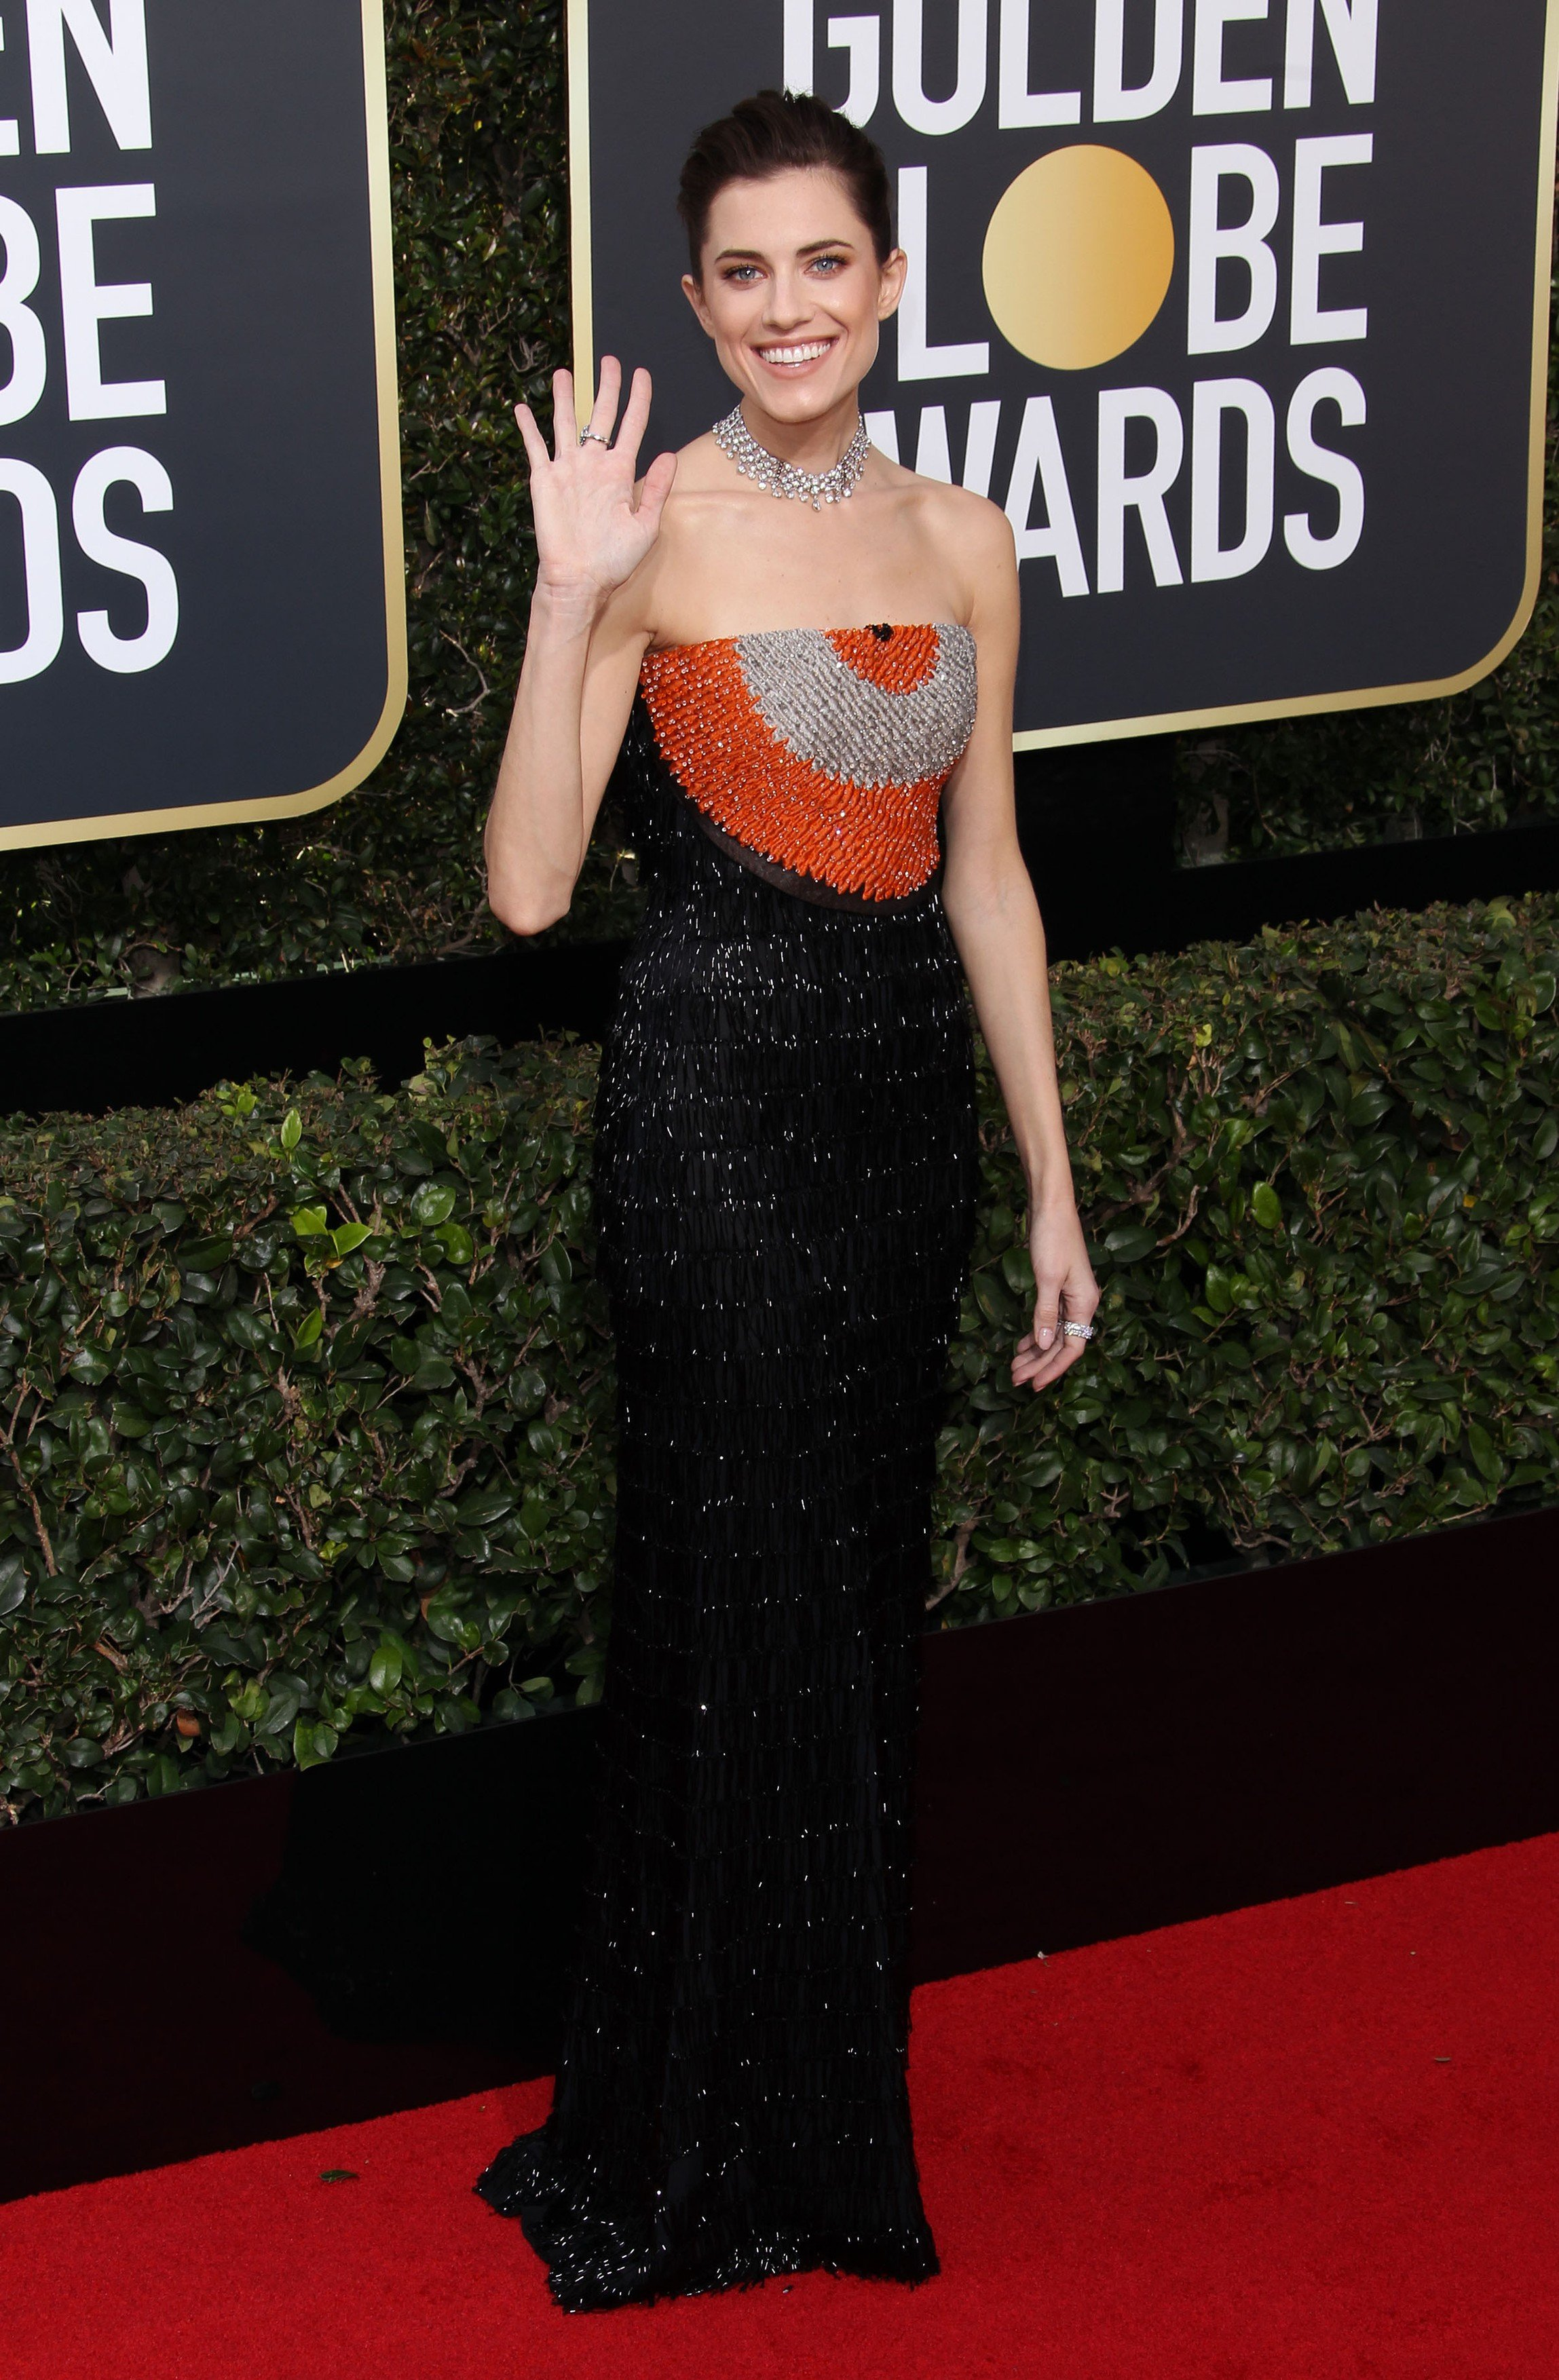 75th Annual Golden Globes. 07 Jan 2018 Pictured: Alison Williams., Image: 359527132, License: Rights-managed, Restrictions: World Rights, Model Release: no, Credit line: Profimedia, Mega Agency